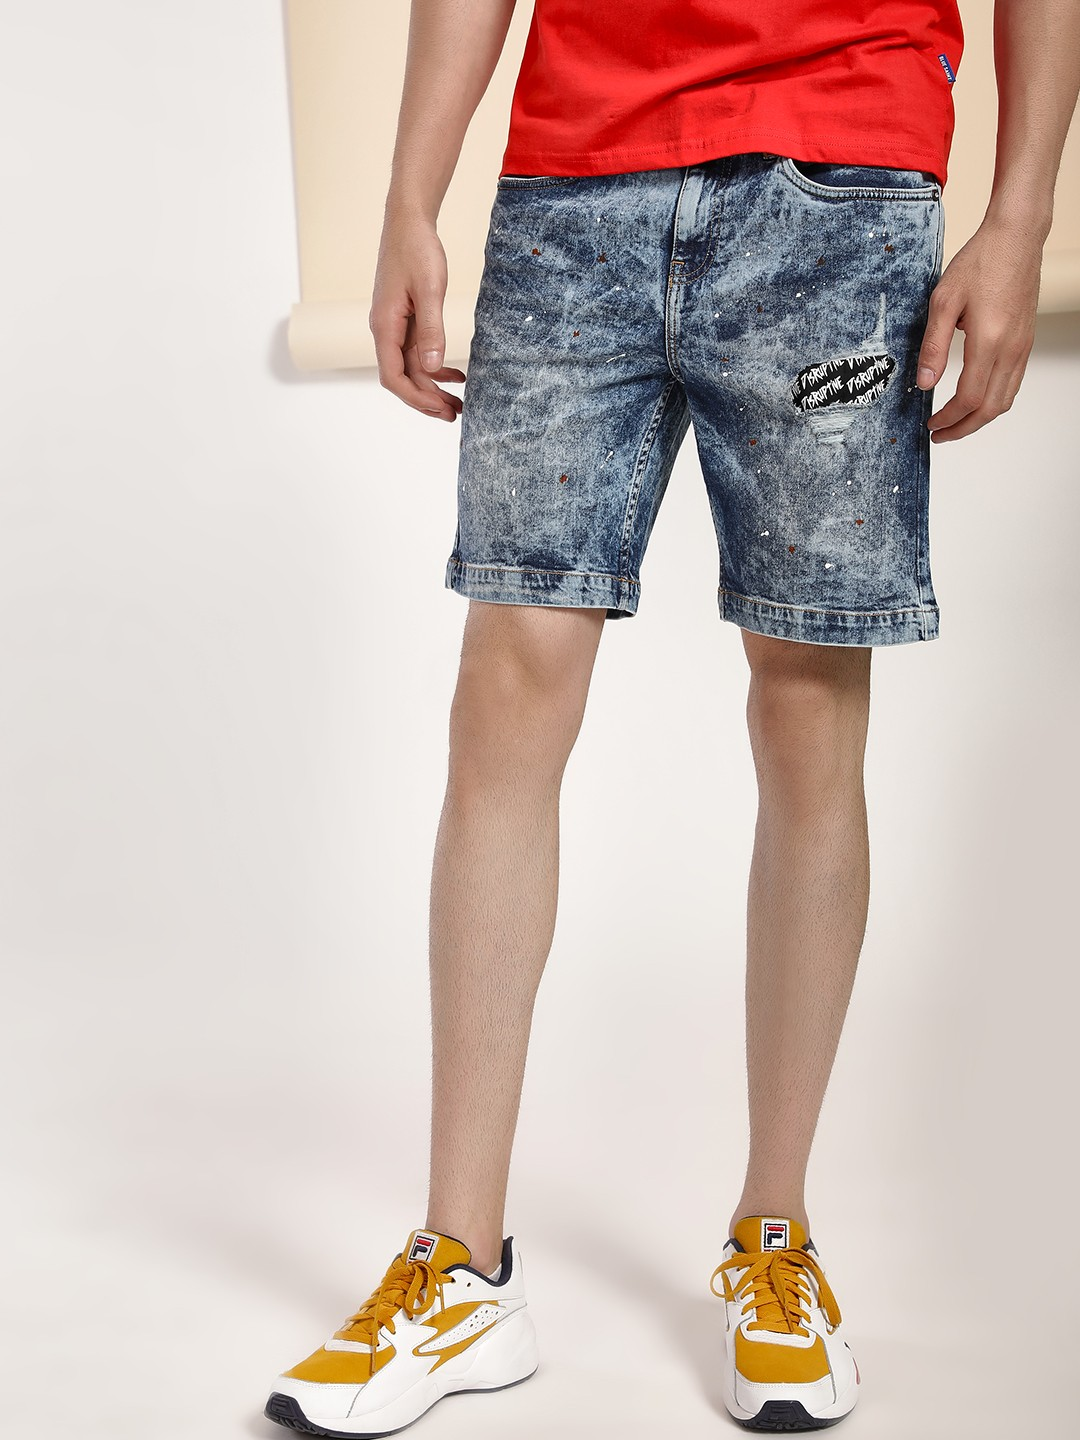 Blue Saint Blue Stonewash Distressed Patch Denim Shorts 1